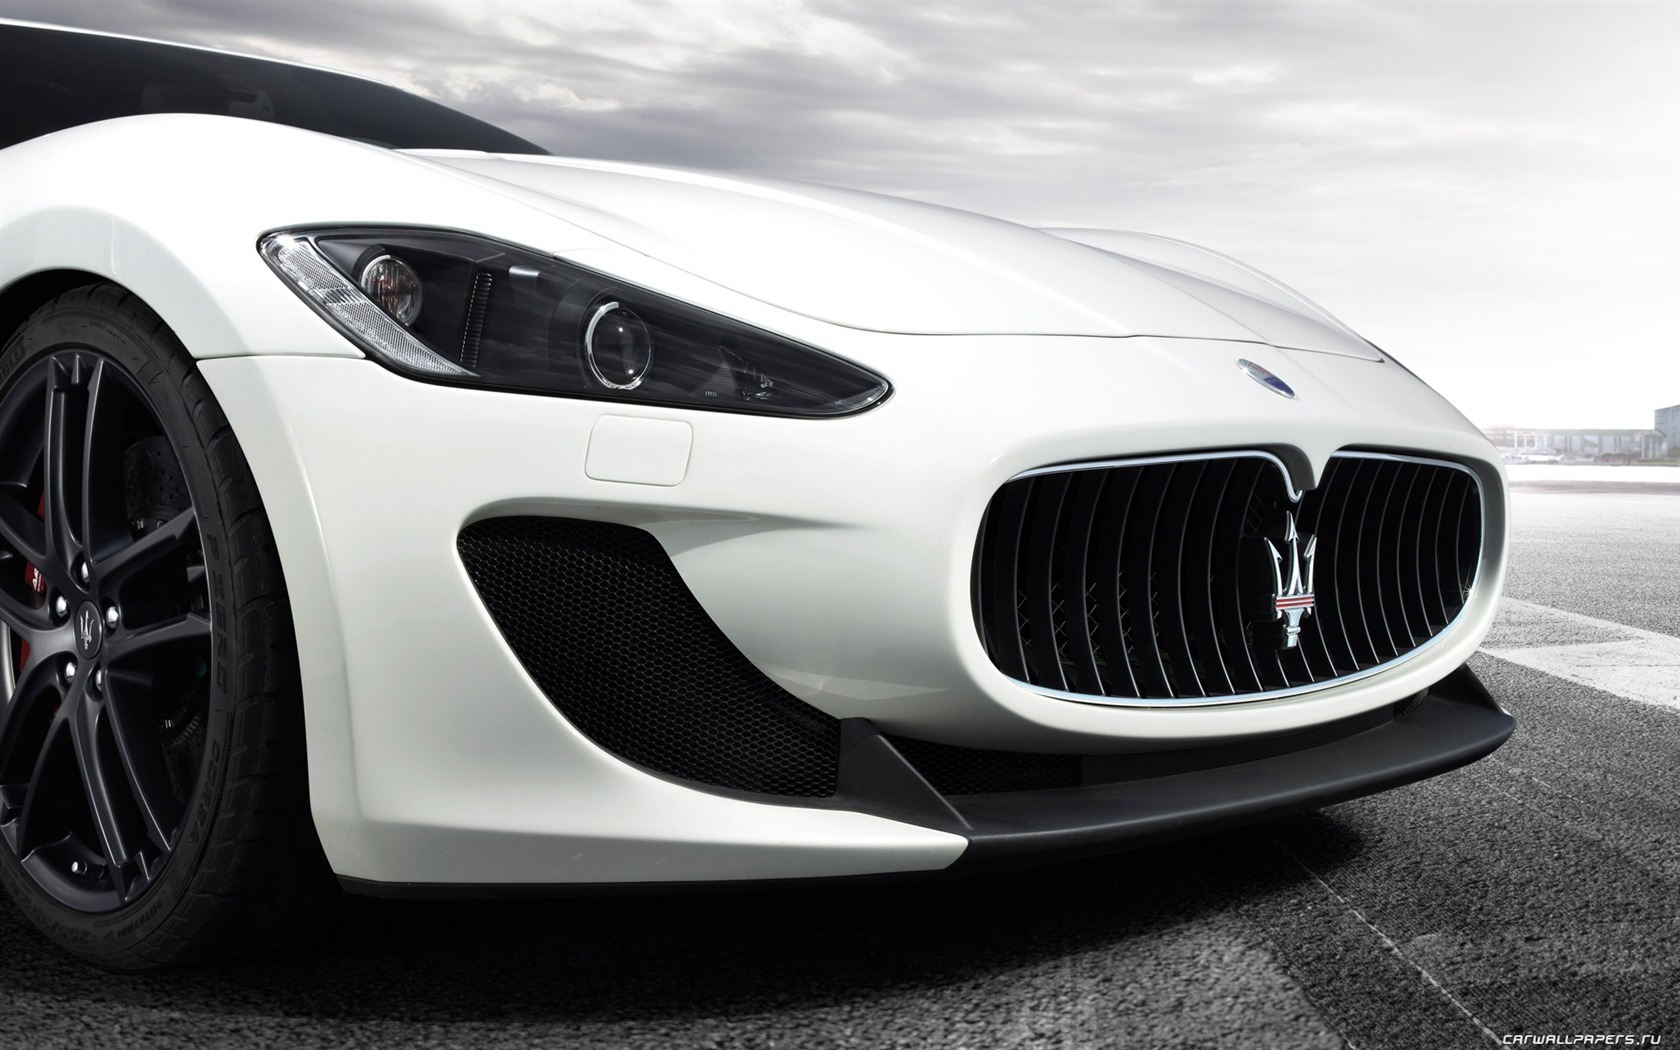 Maserati GranTurismo MC Stradale - 2010 HD wallpaper 08 - 1680x1050 ...